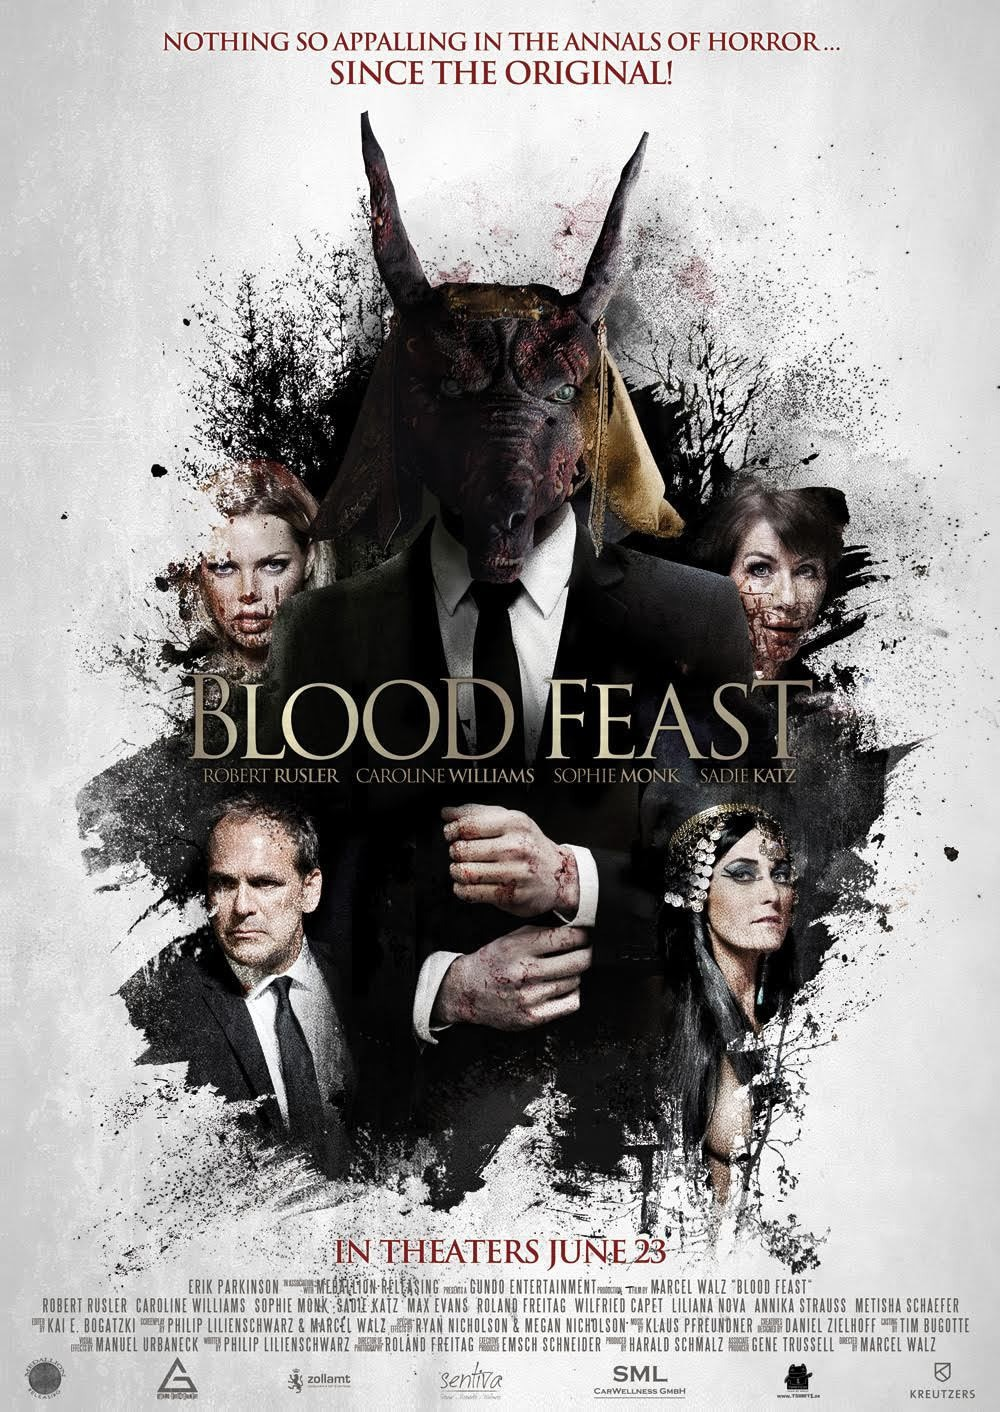 blood feast poster - Blood Feast Remake Gets a Cool One-Sheet